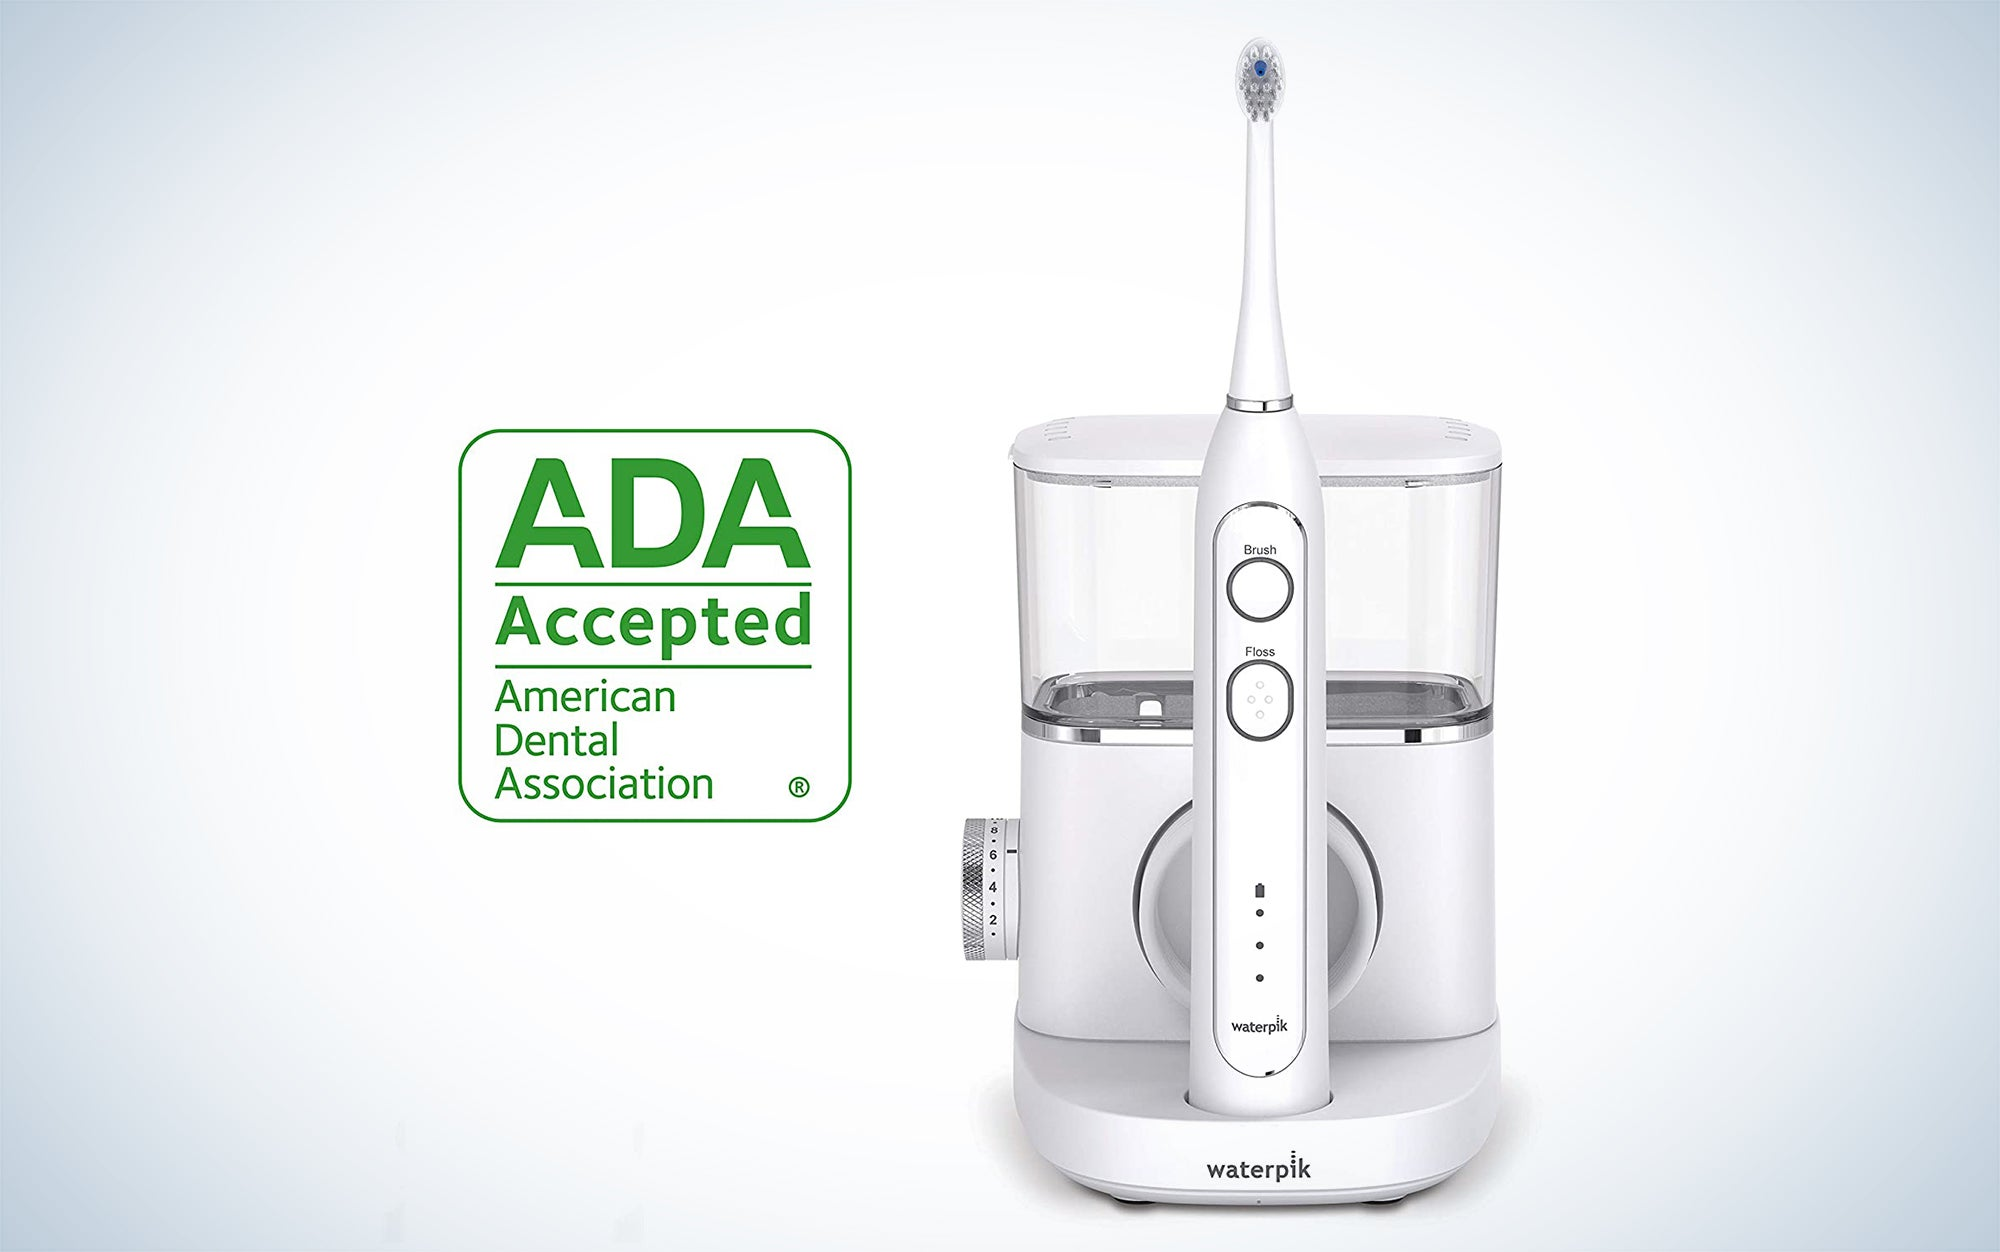 Waterpik Sonic-Fusion Professional Flossing Toothbrush is one of the best electric toothbrushes.